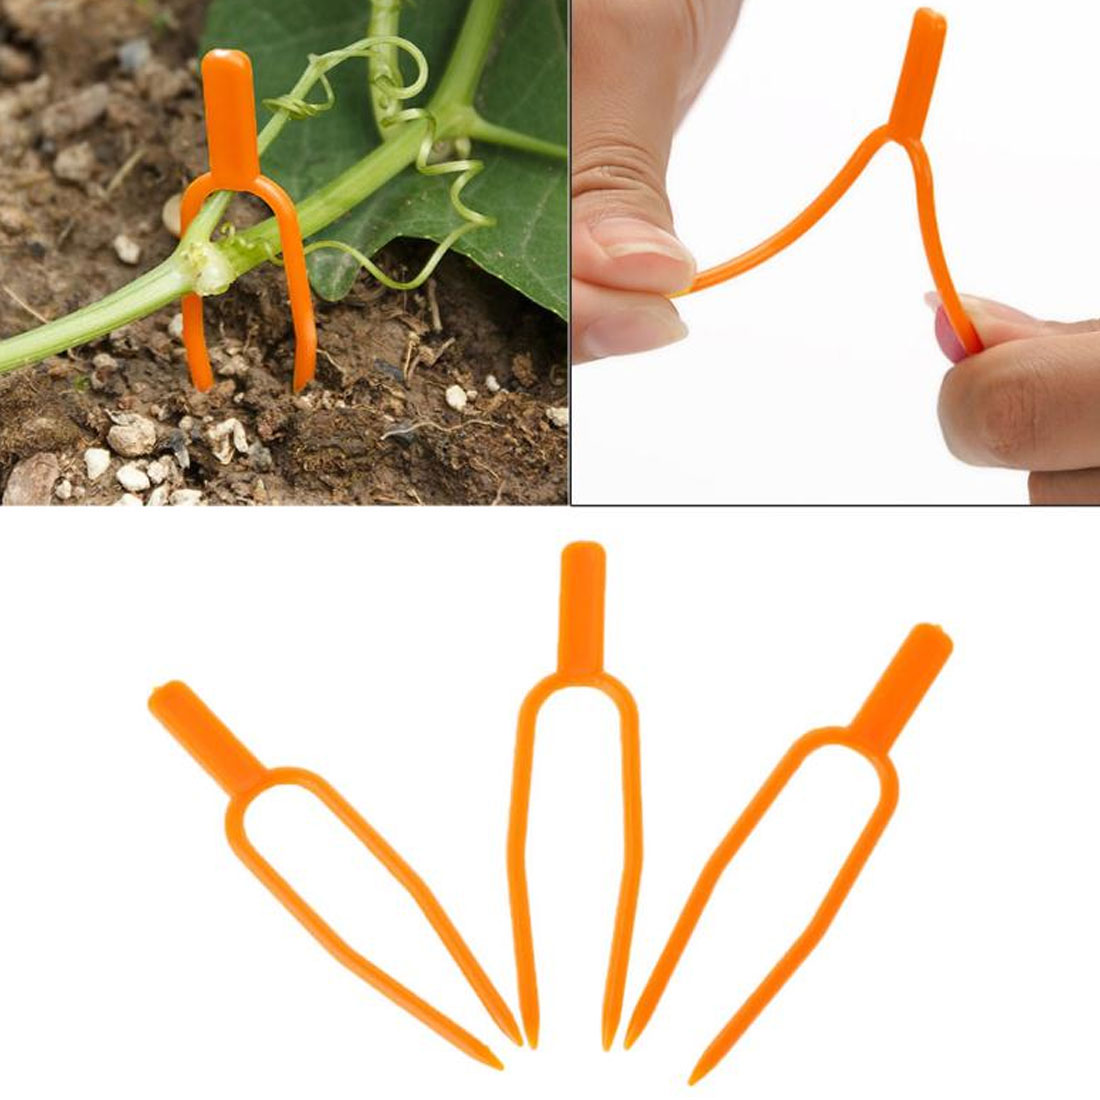 Plastic Quality Plant Clips Garden Supplies 50pcs/set Fixing Fastening Fixture Clamp Strawberry Fork Farming Clip Plant Support